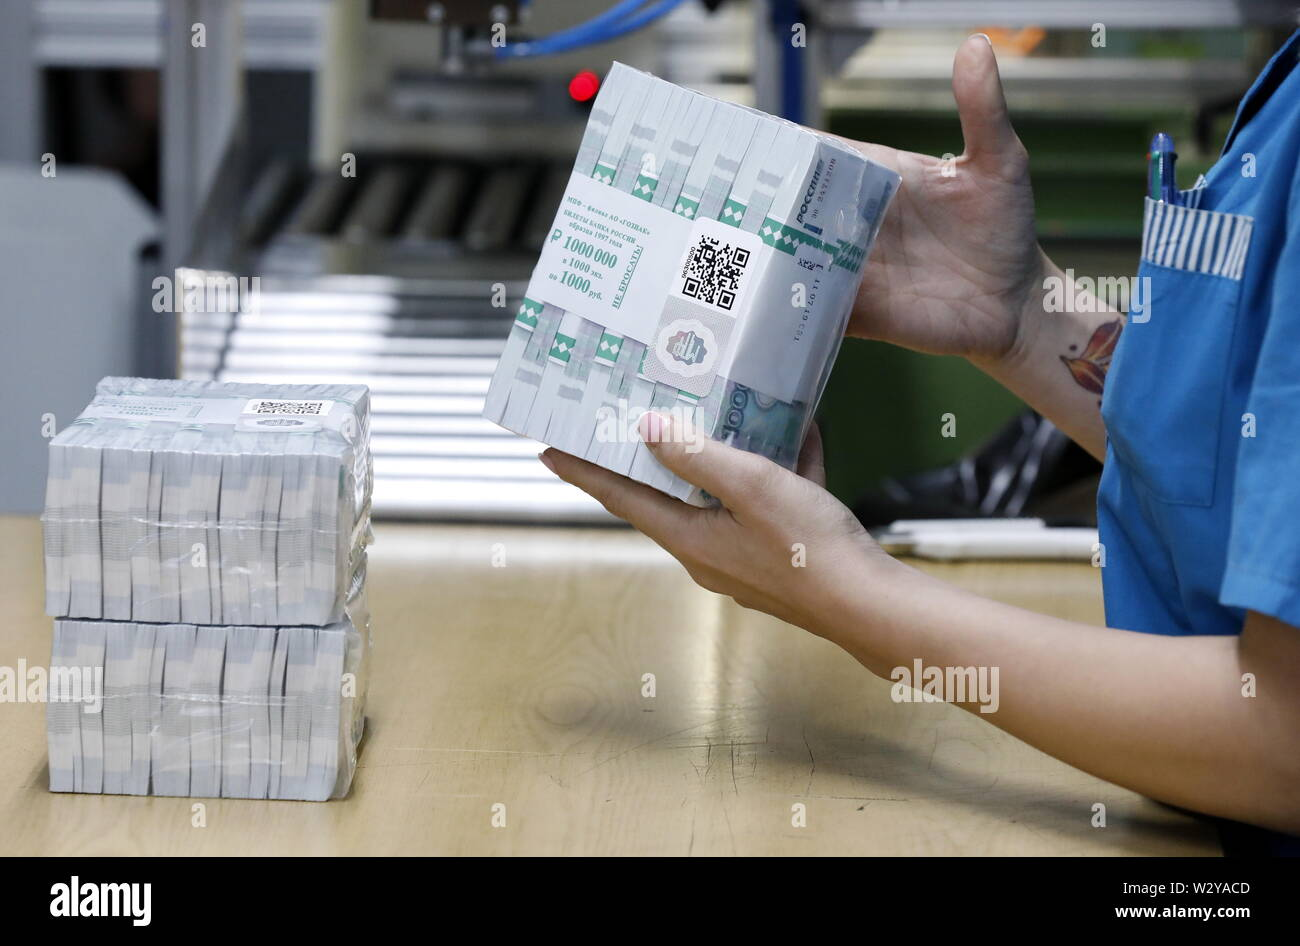 Moscow, Russia. 11th July, 2019. MOSCOW, RUSISA - JULY 11, 2019: Russian 1,000-ruble banknotes produced at the Moscow Printing Factory owned by Goznak, the enterprise and its branch both celebrating their centenaries in 2019. Artyom Geodakyan/TASS Credit: ITAR-TASS News Agency/Alamy Live News - Stock Image